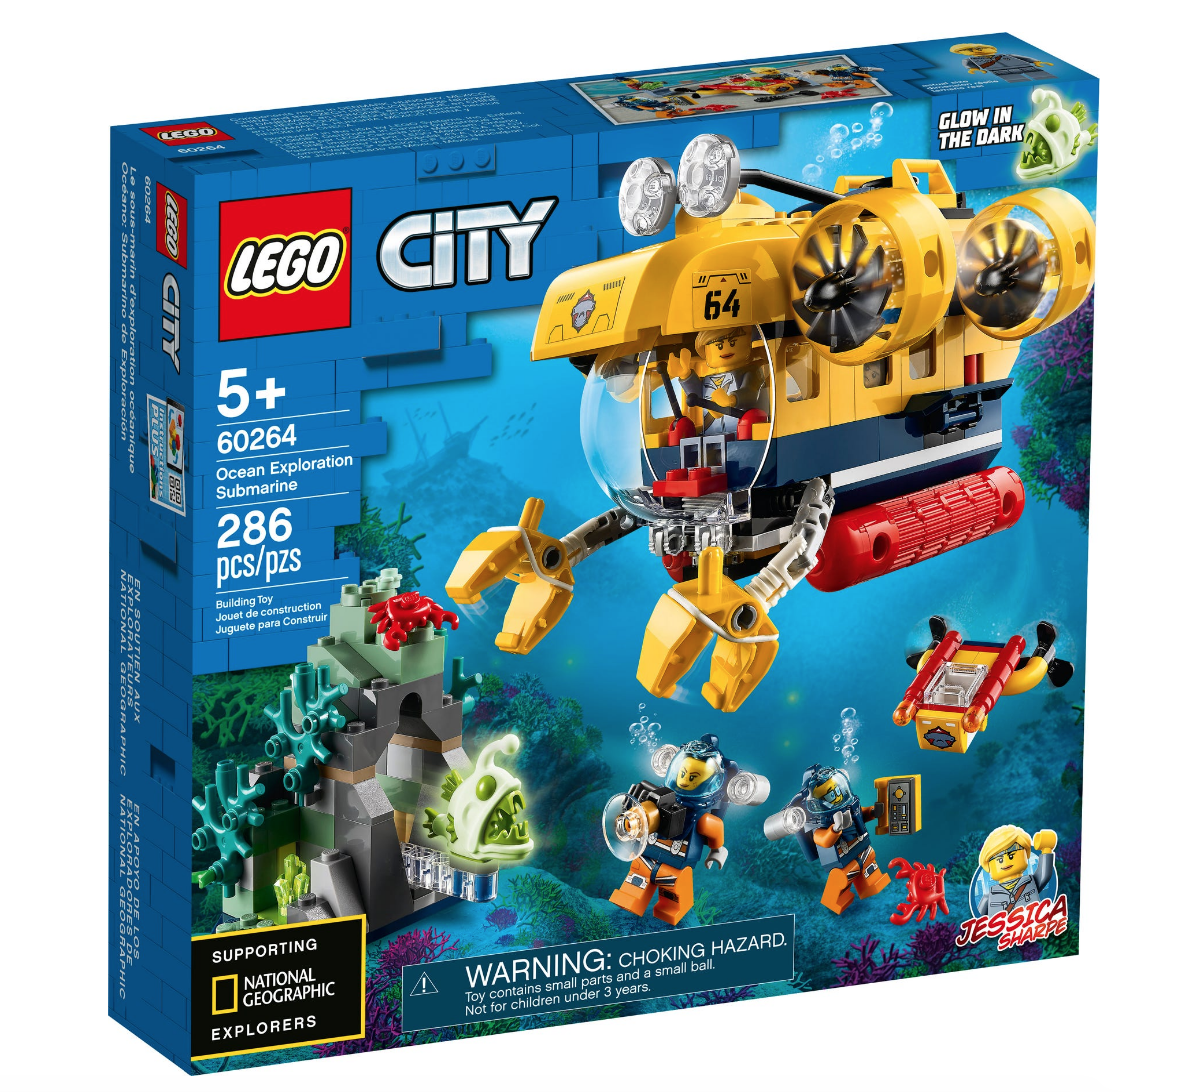 60264 Ocean Exploration Submarine by LEGO City